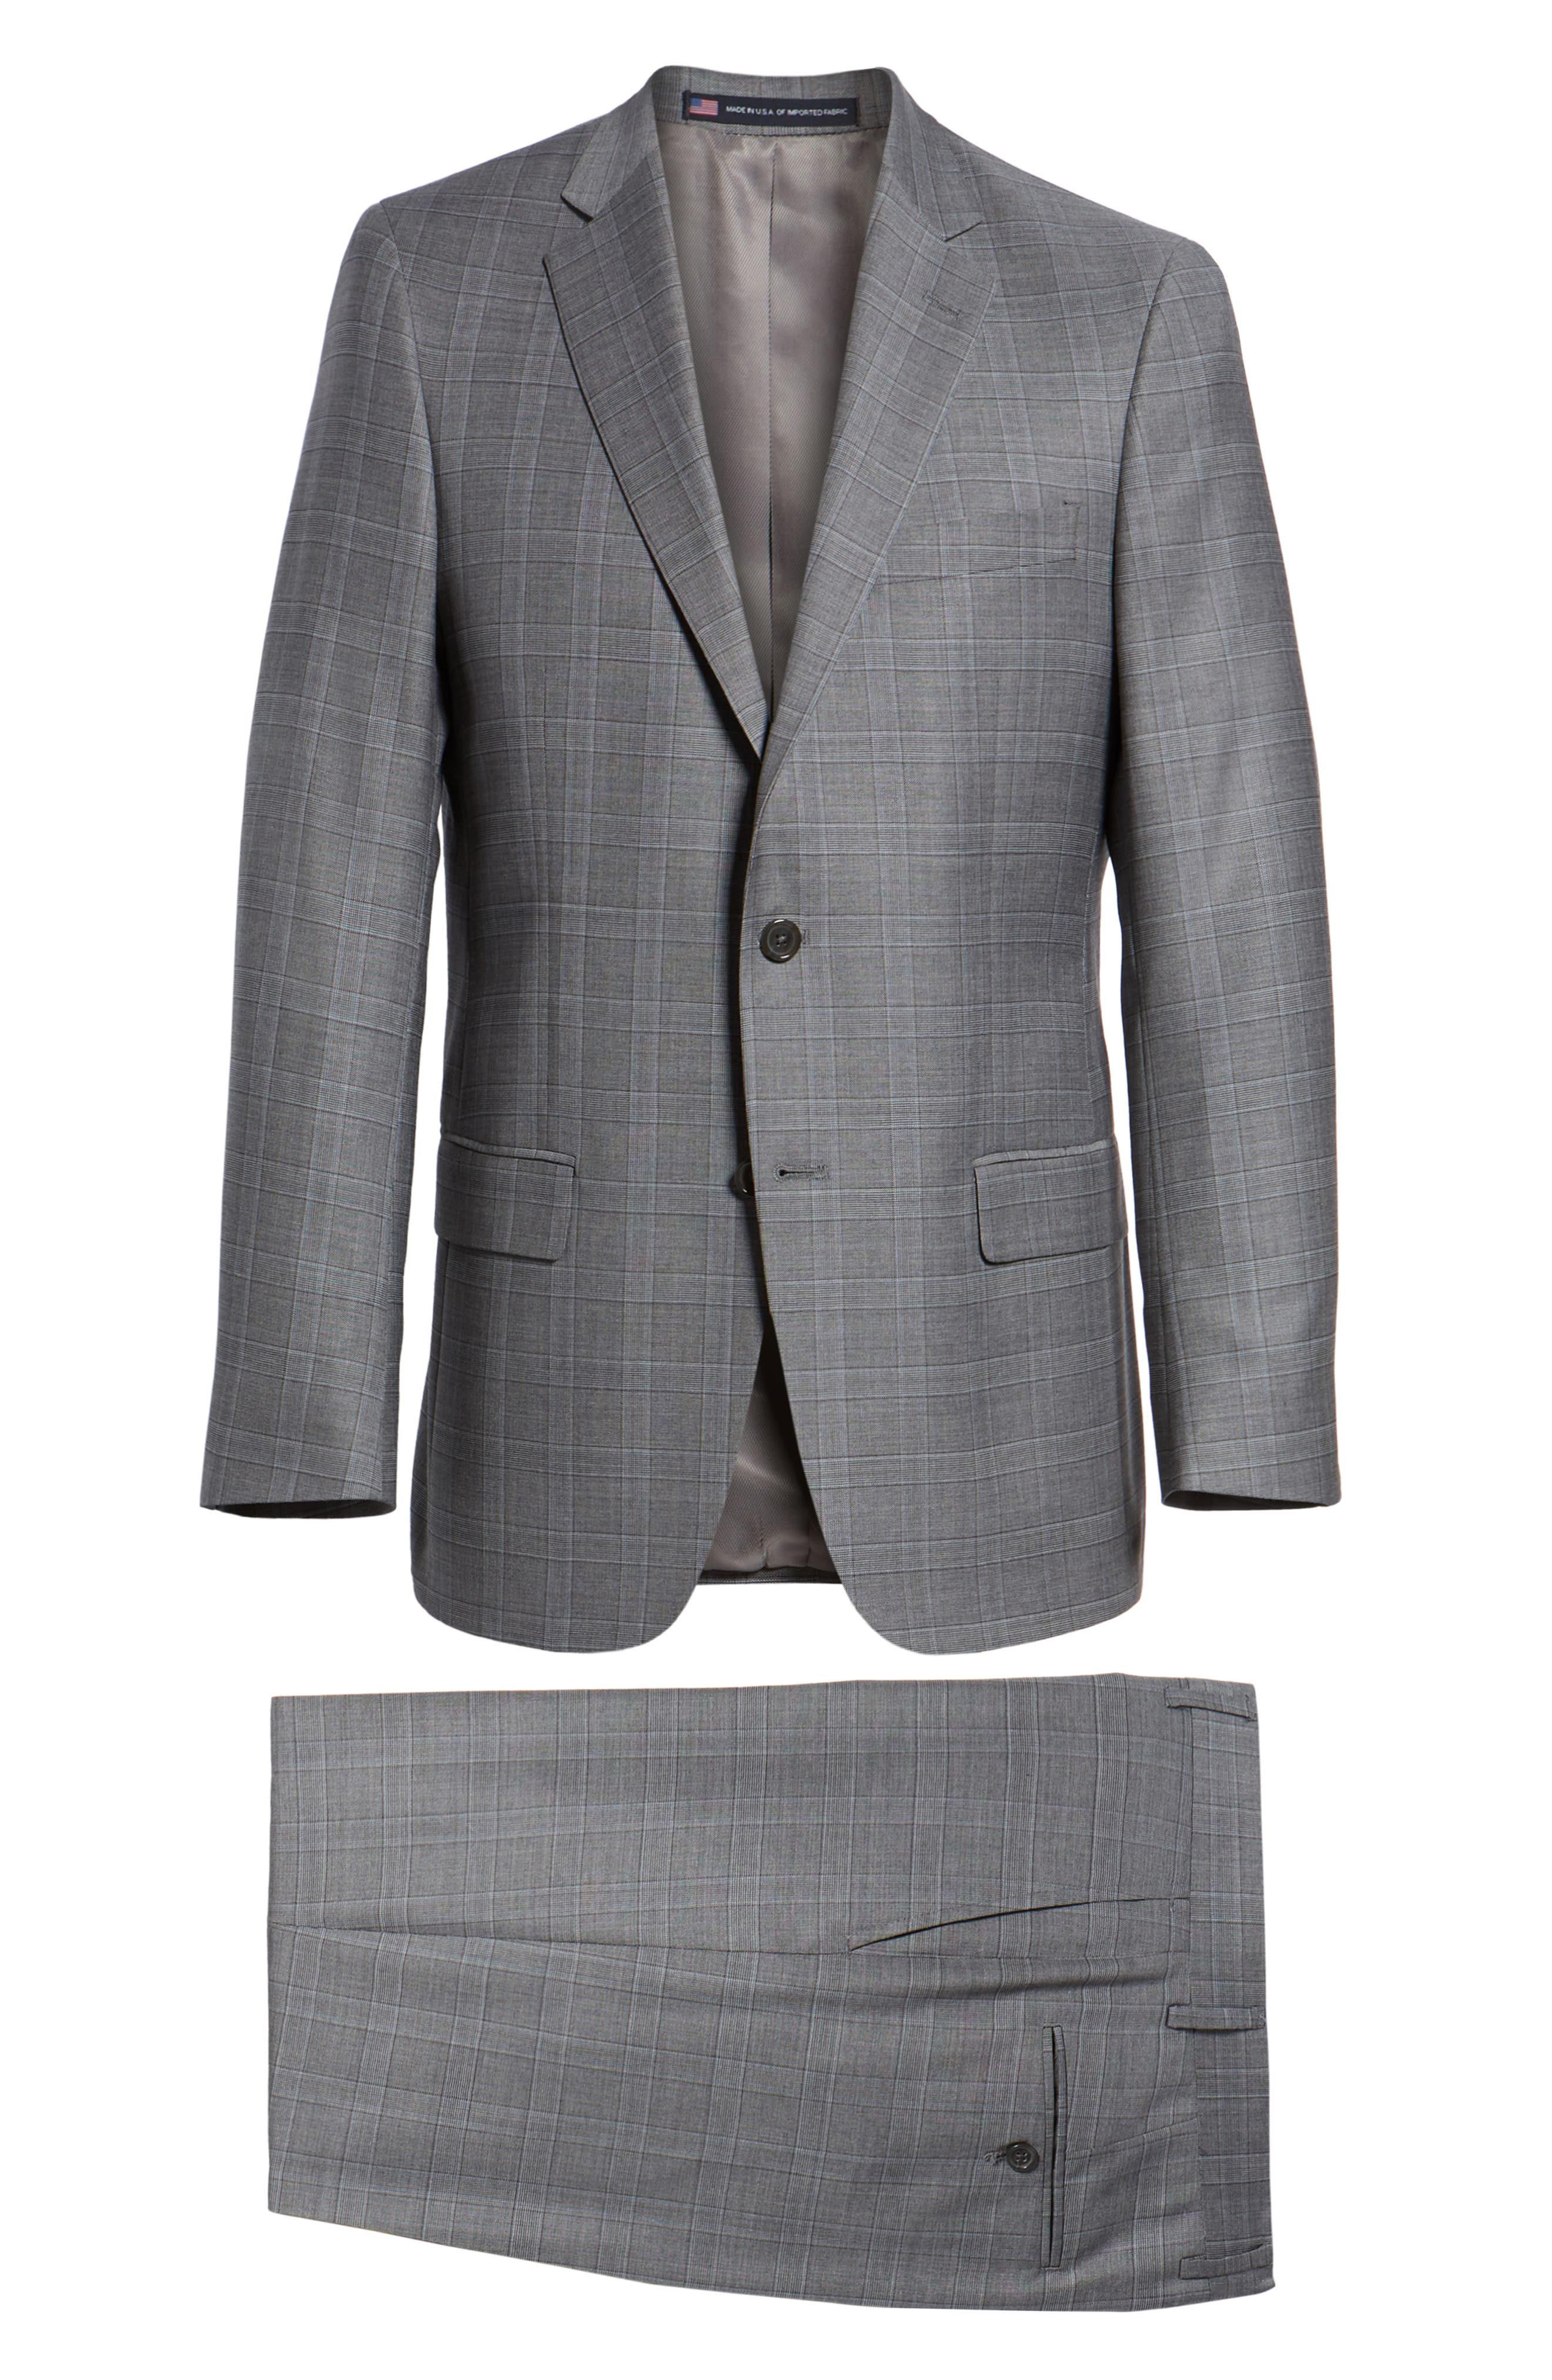 New York Classic Fit Plaid Wool Suit,                             Alternate thumbnail 8, color,                             MID GREY